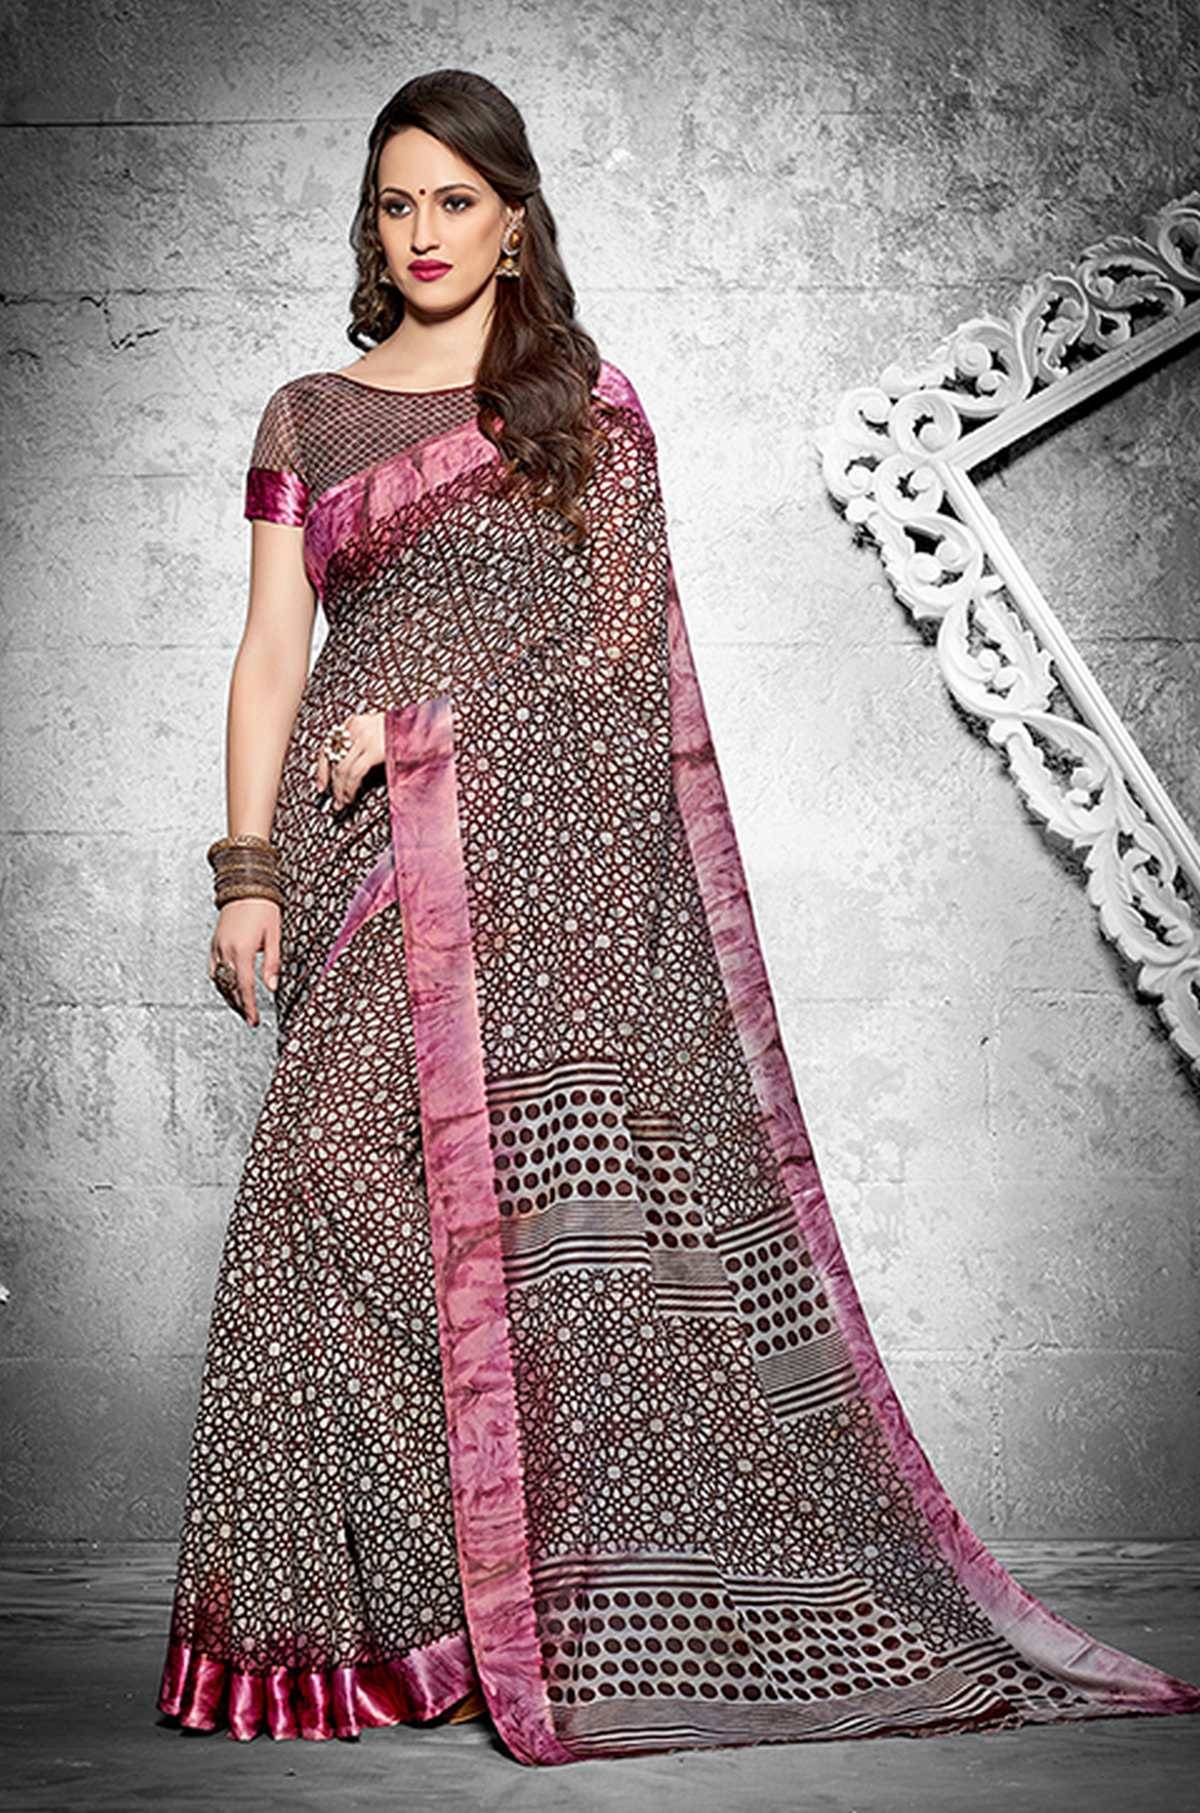 Printed Silk Saree (sari) in Brown